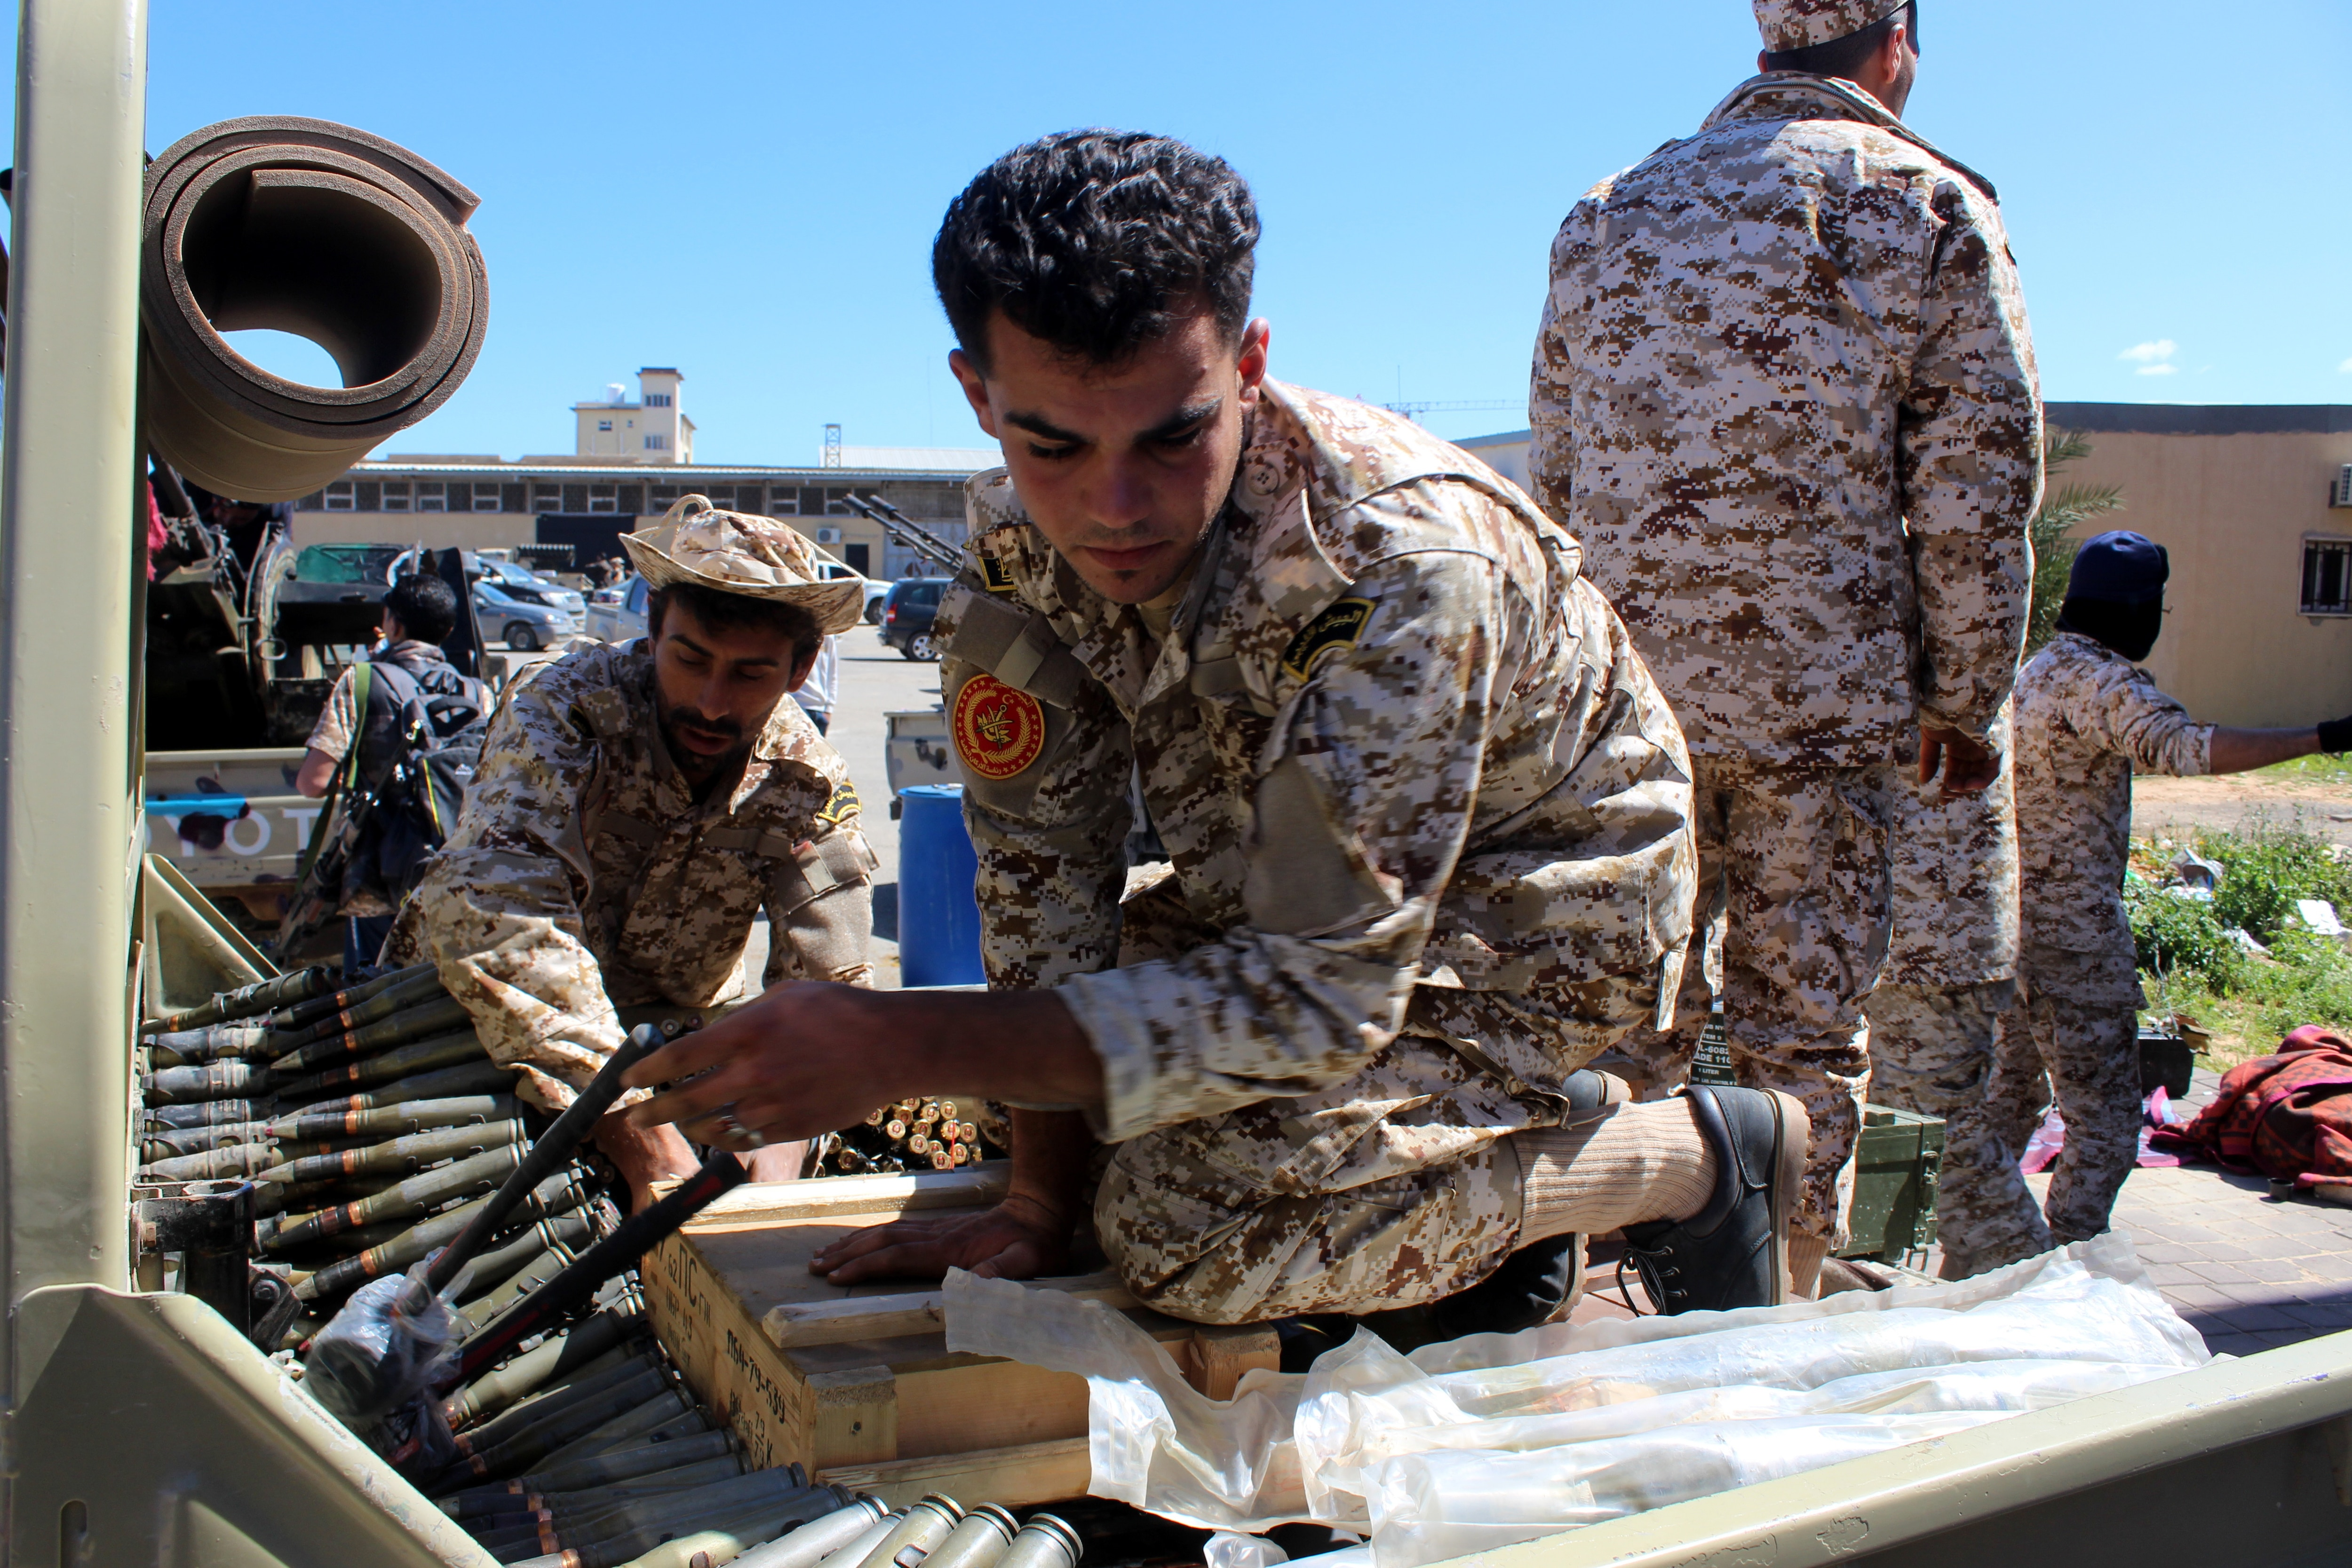 Commander of the Libyan National Army Khalifa Haftar has ordered Libyan forces loyal to him to take the capital Tripoli, held by a UN-backed unity government.